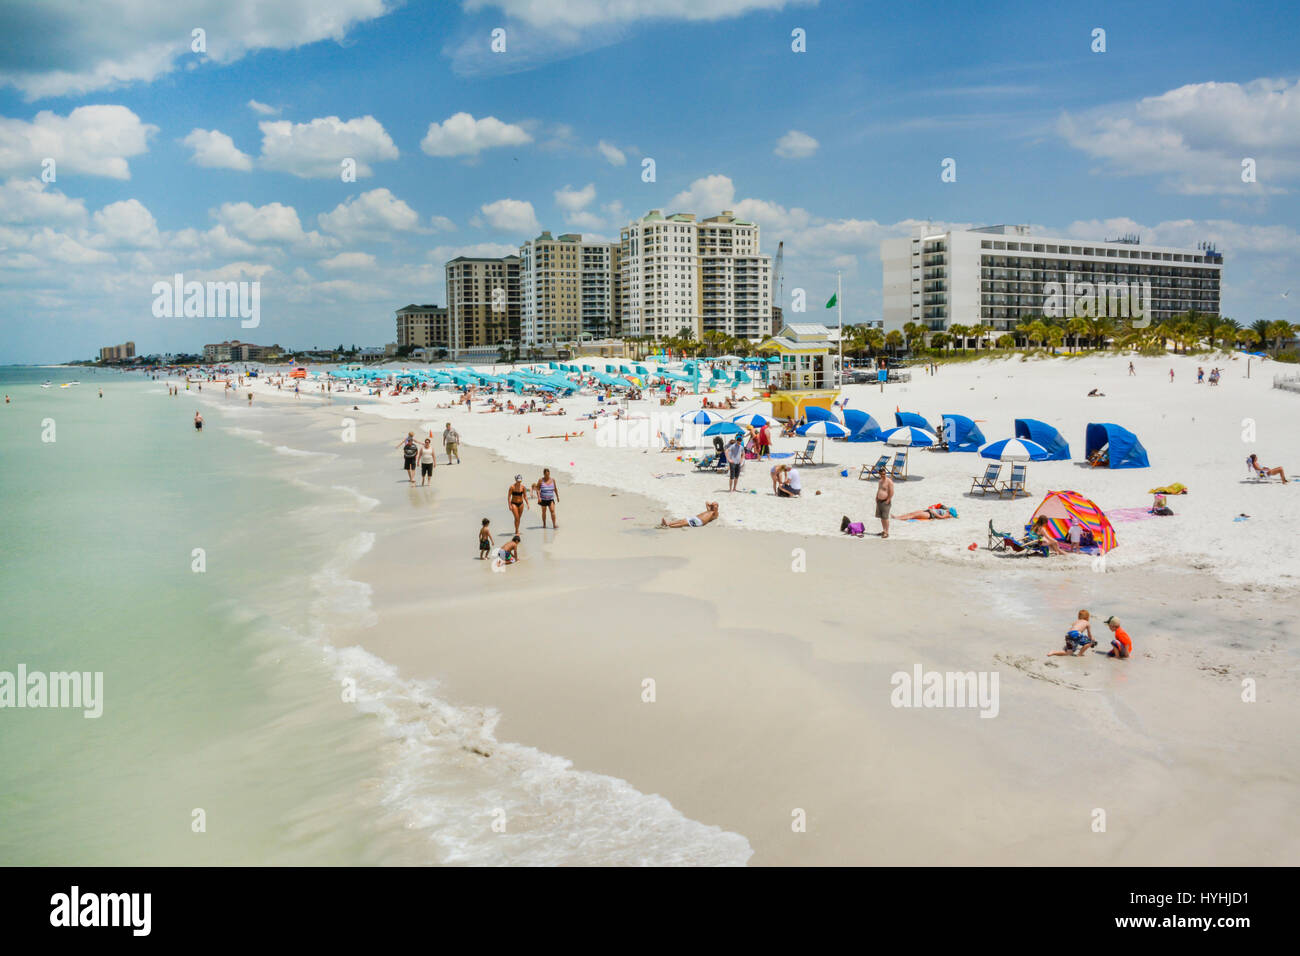 Long overview of people strolling, wading, swimming, sunbathing  & enjoying the white sand and turquoise waters - Stock Image